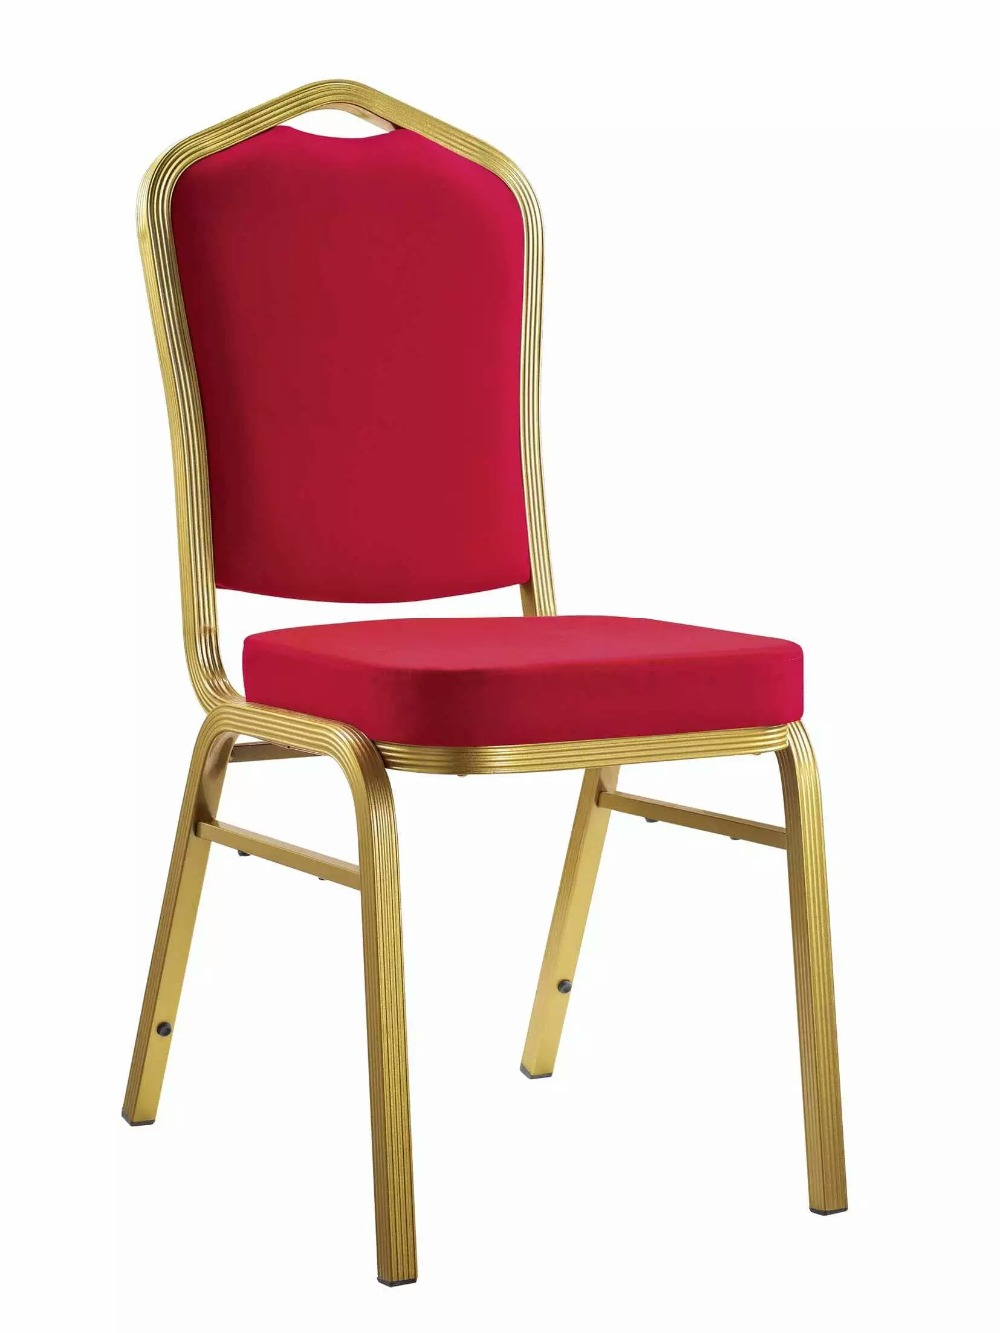 stools castelli sell g furniture stacking buy set by of and chairs dsc chair piretti pirettiset giancarlo